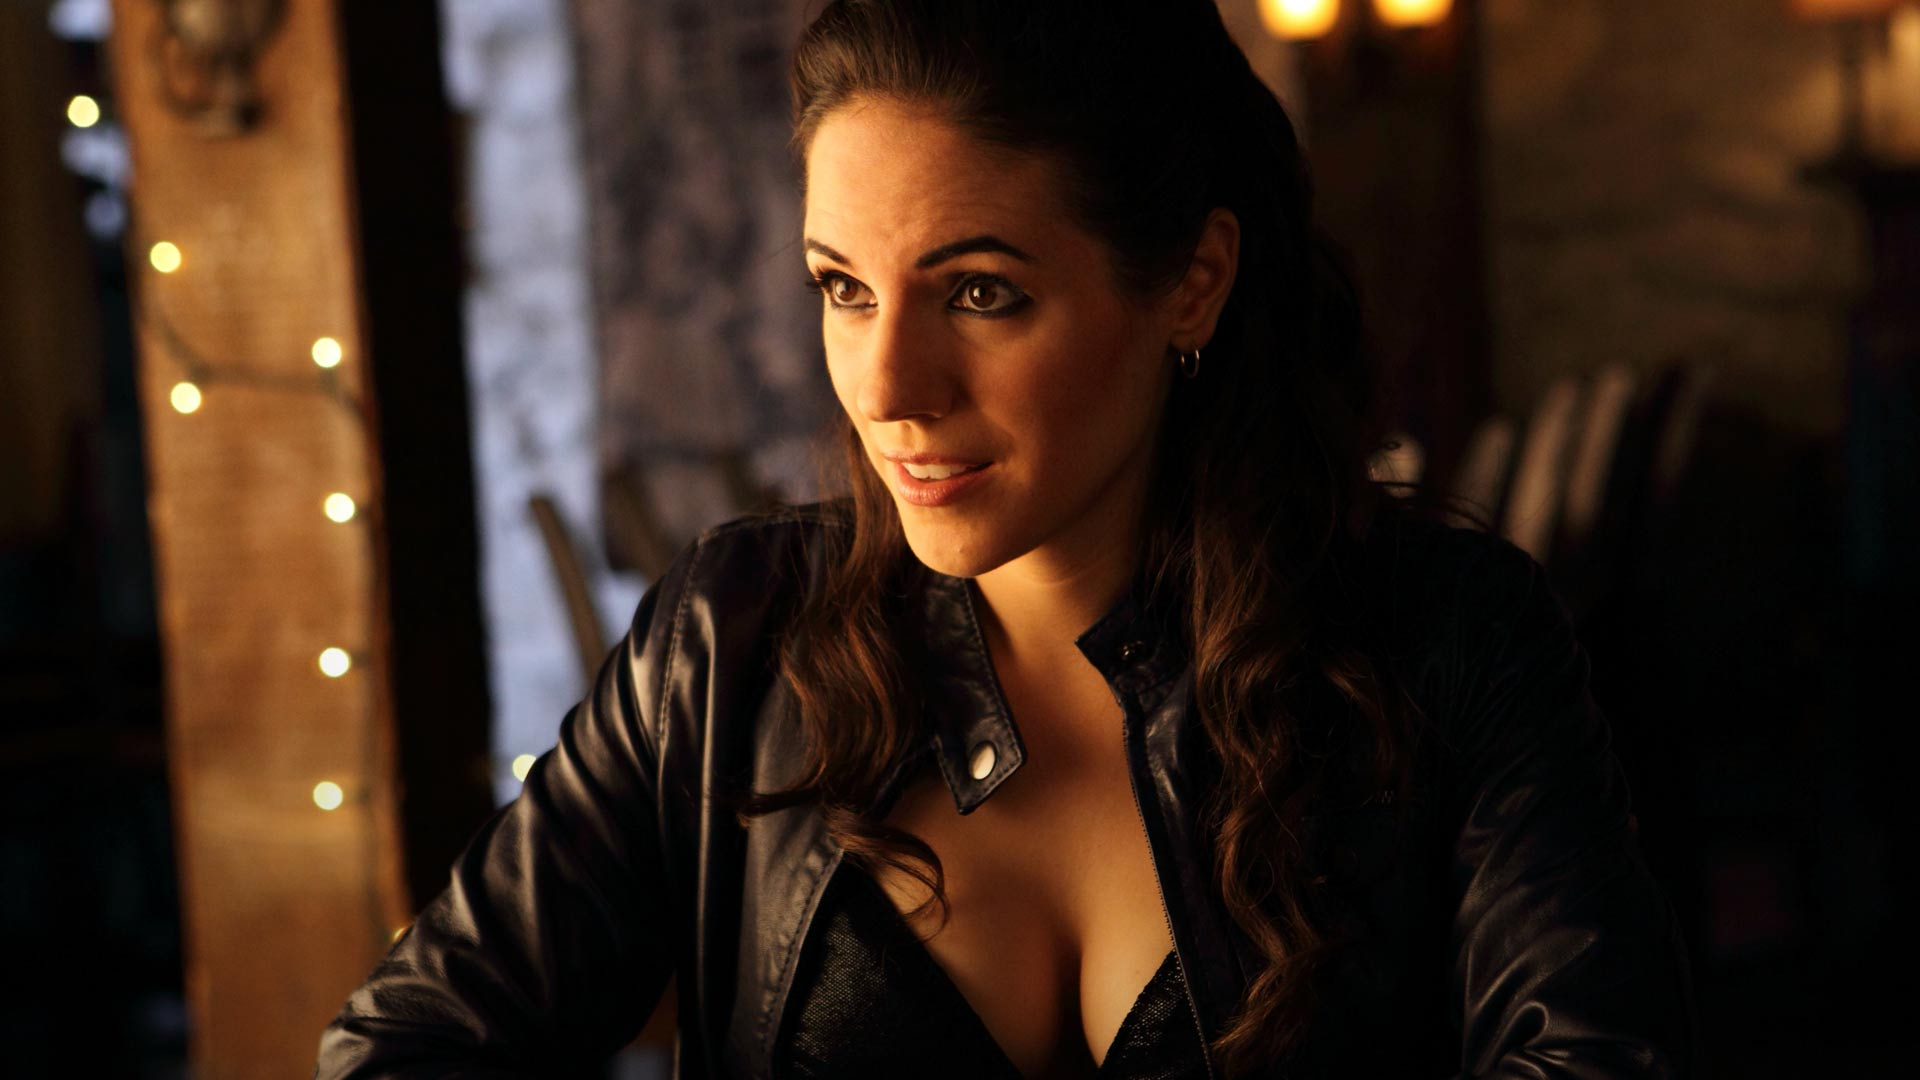 syfy renews sexy supernatural series lost girl for 4th